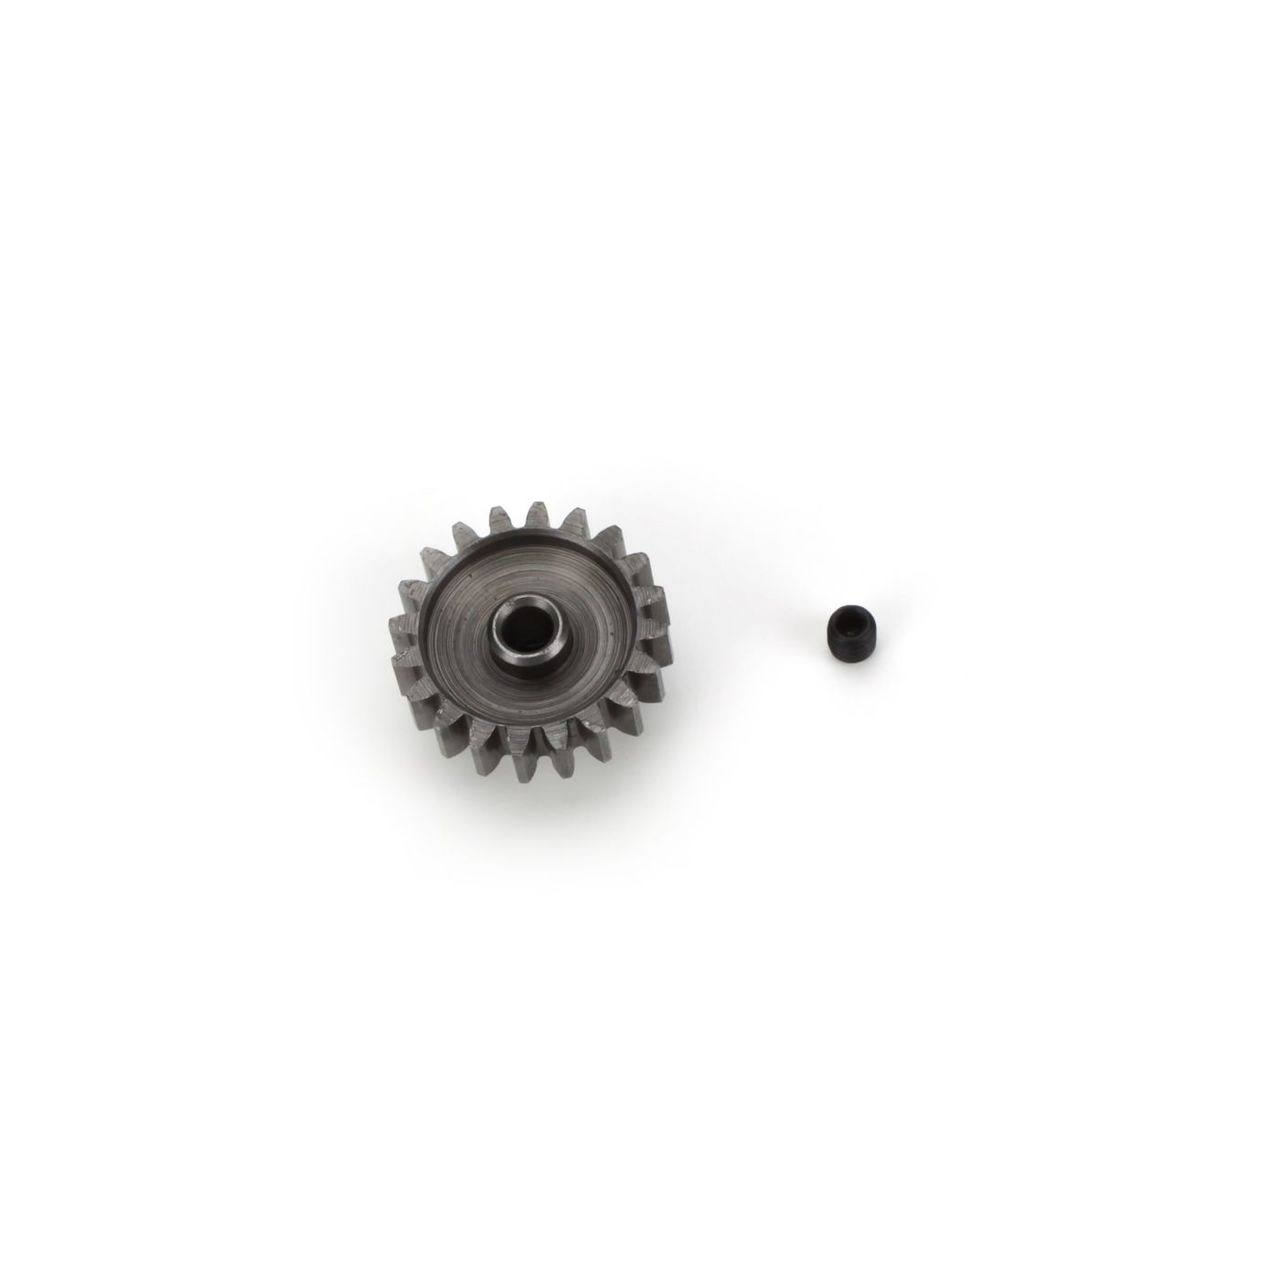 Robinson Racing 1720 Hardened 32P Absolute Pinion 20T